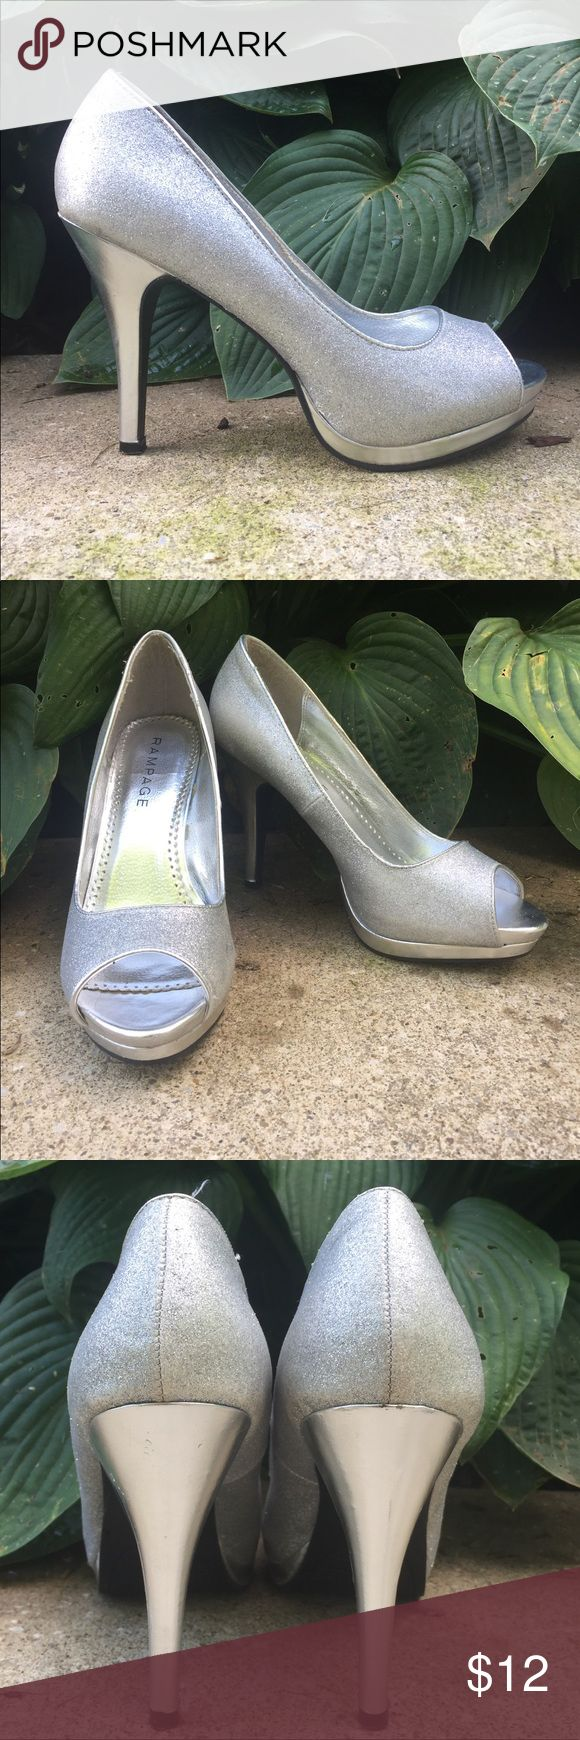 Silver Peep Toe Heels 4in of prom sparkle✨ I've only worn them twice, to my junior and senior prom and even then they were mostly worn for pictures. There's a few scuff marks that I included in the pictures, but they're hardly noticeable when wearing them! Rampage Shoes Heels